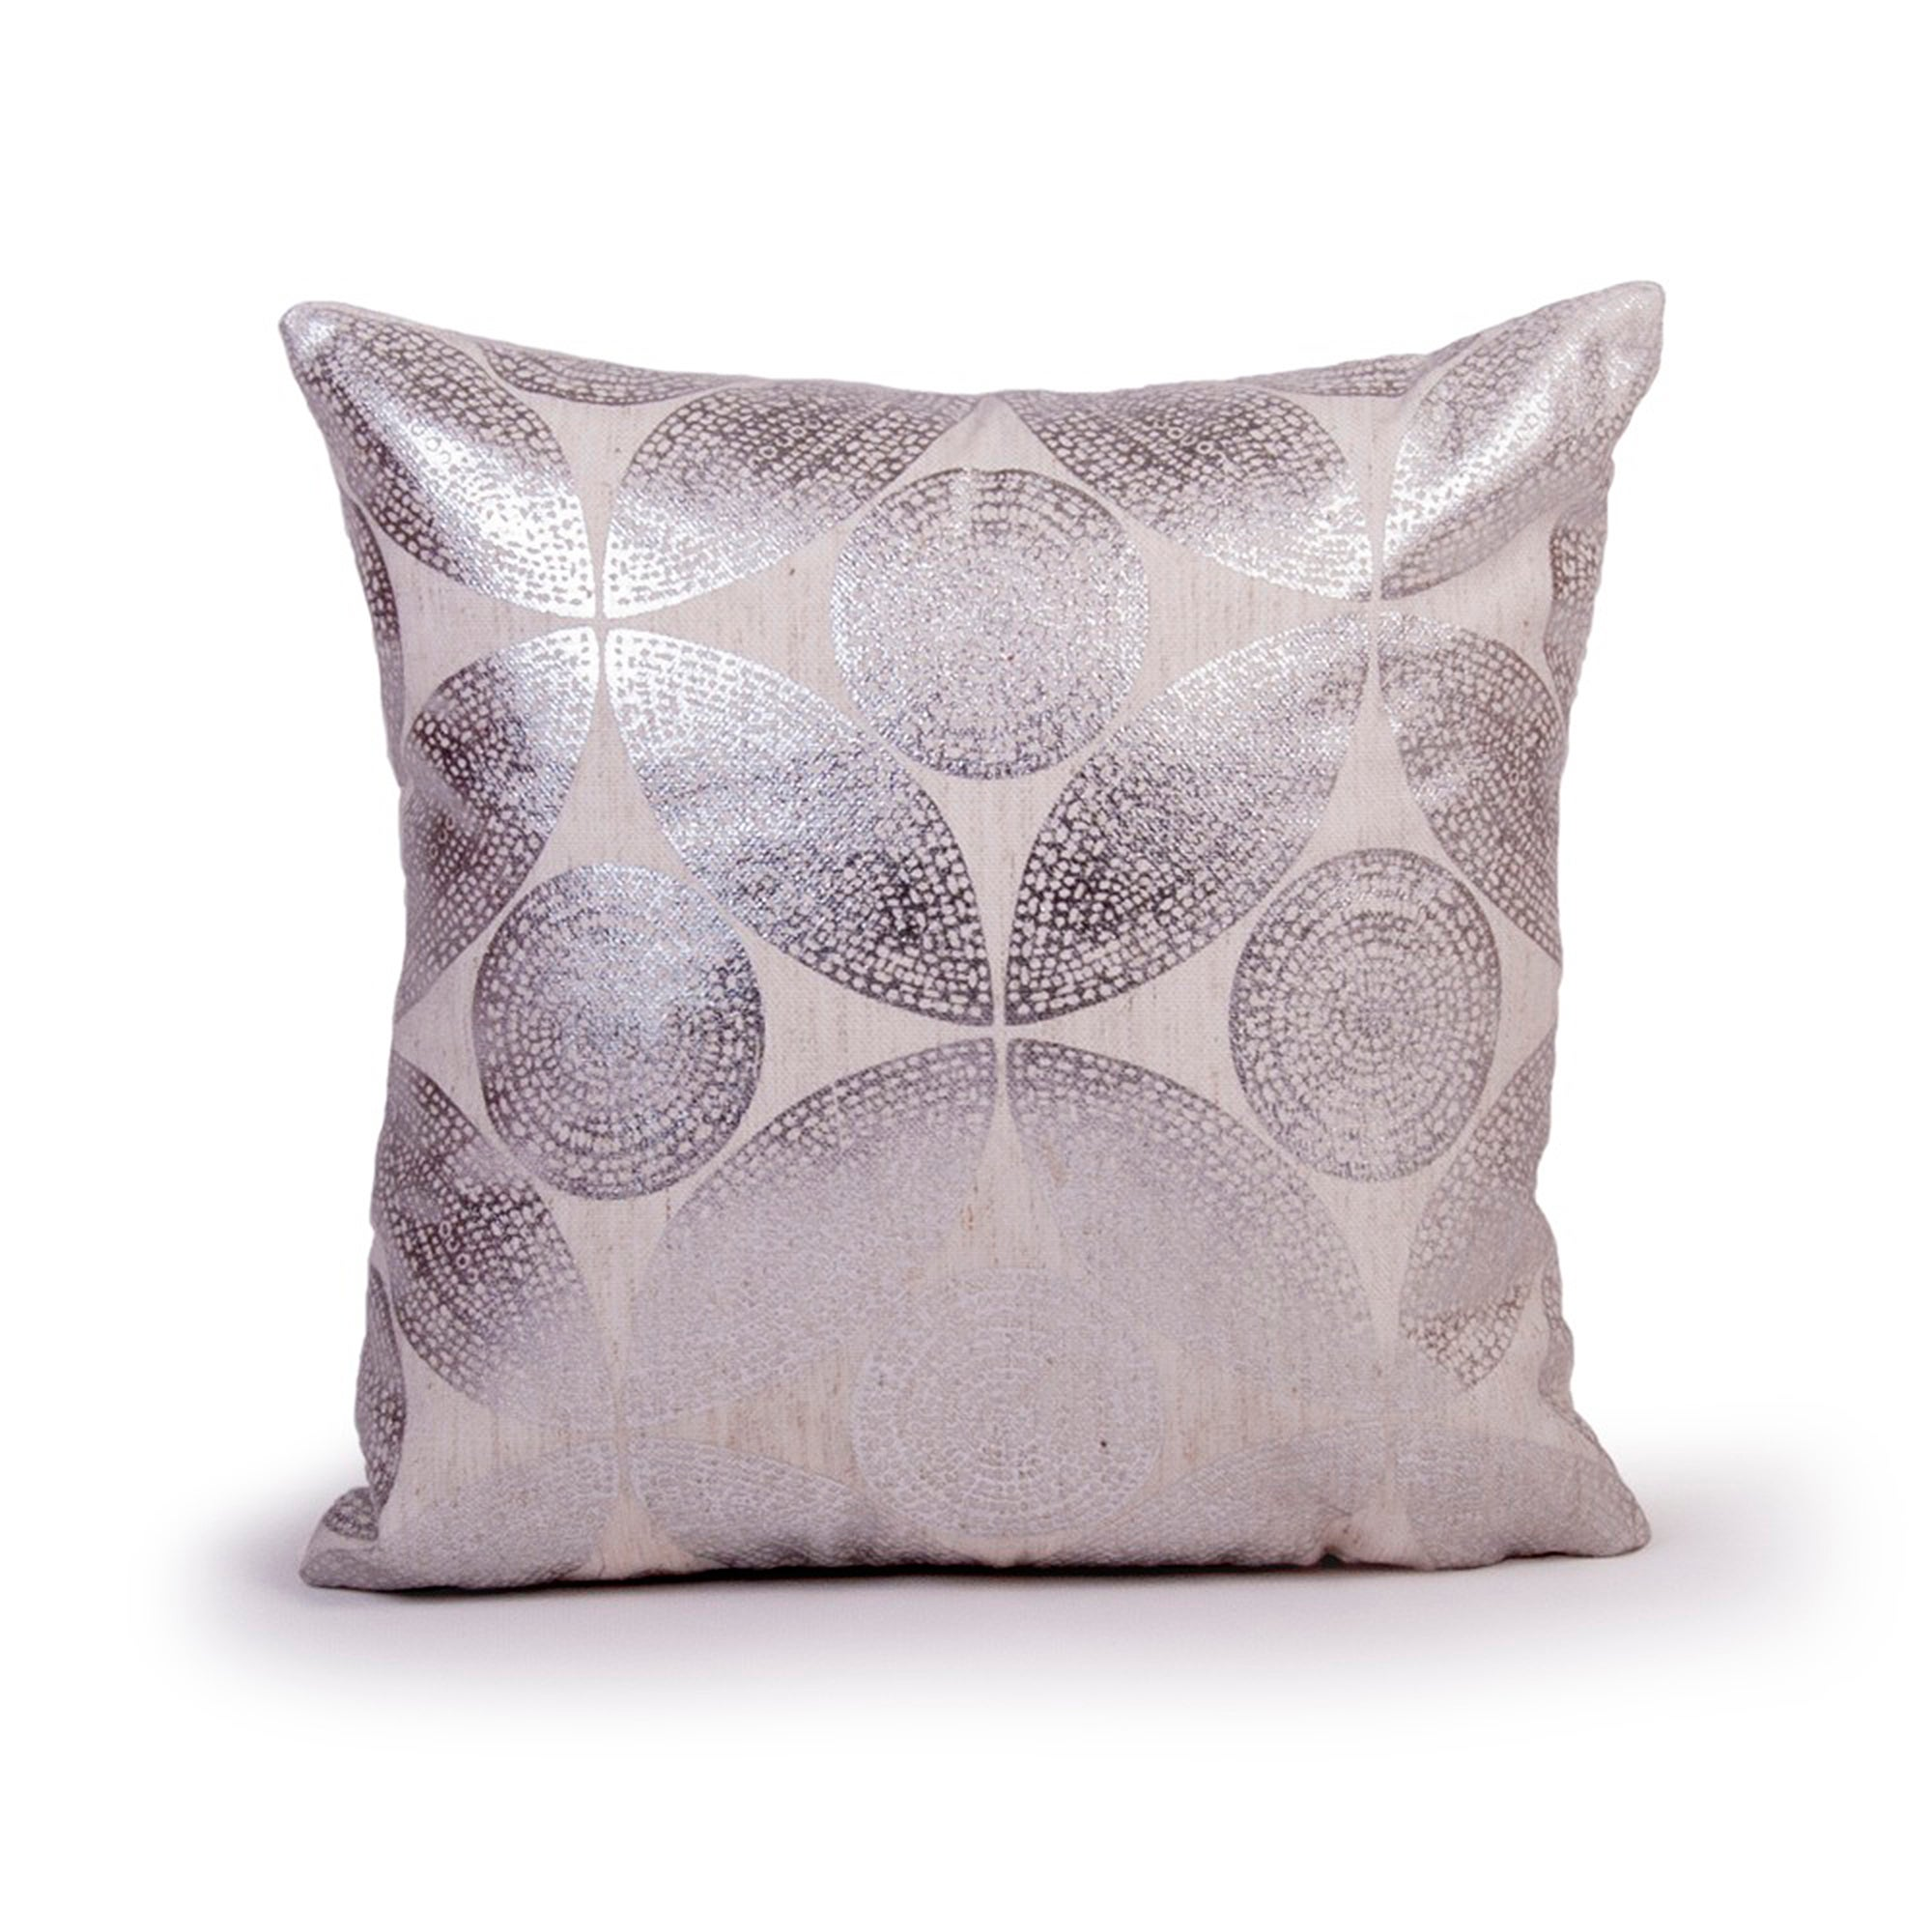 Silver Reuben Cushion